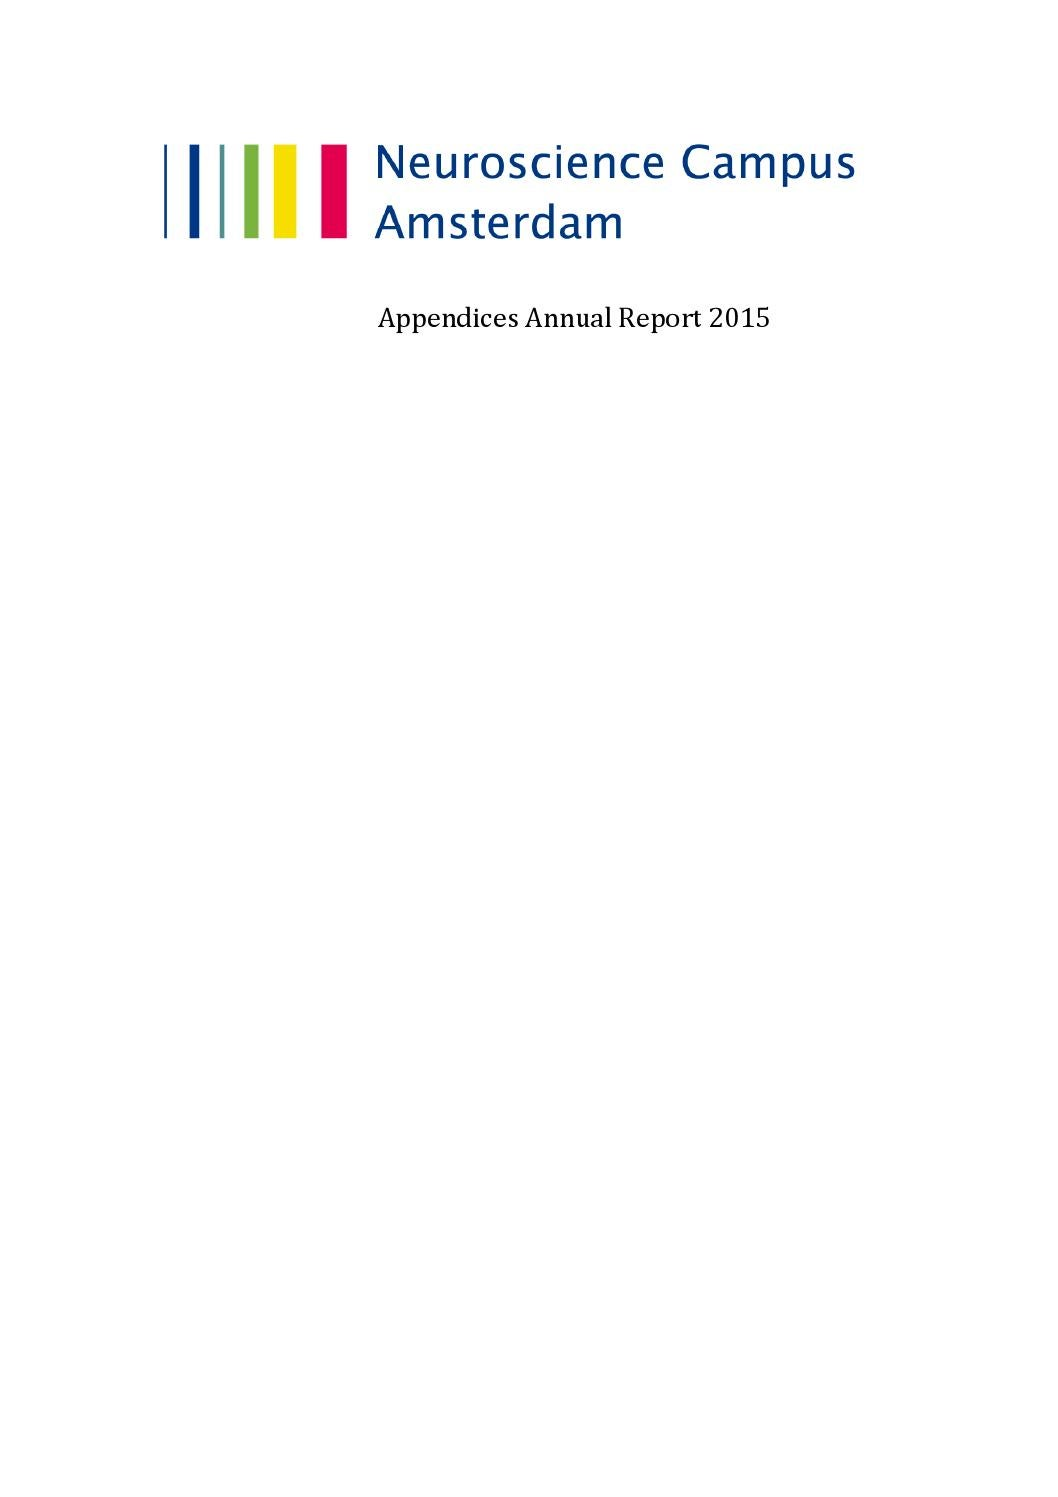 Nca Annual Report 2015 Appendices By Vrije Universiteit Amsterdam